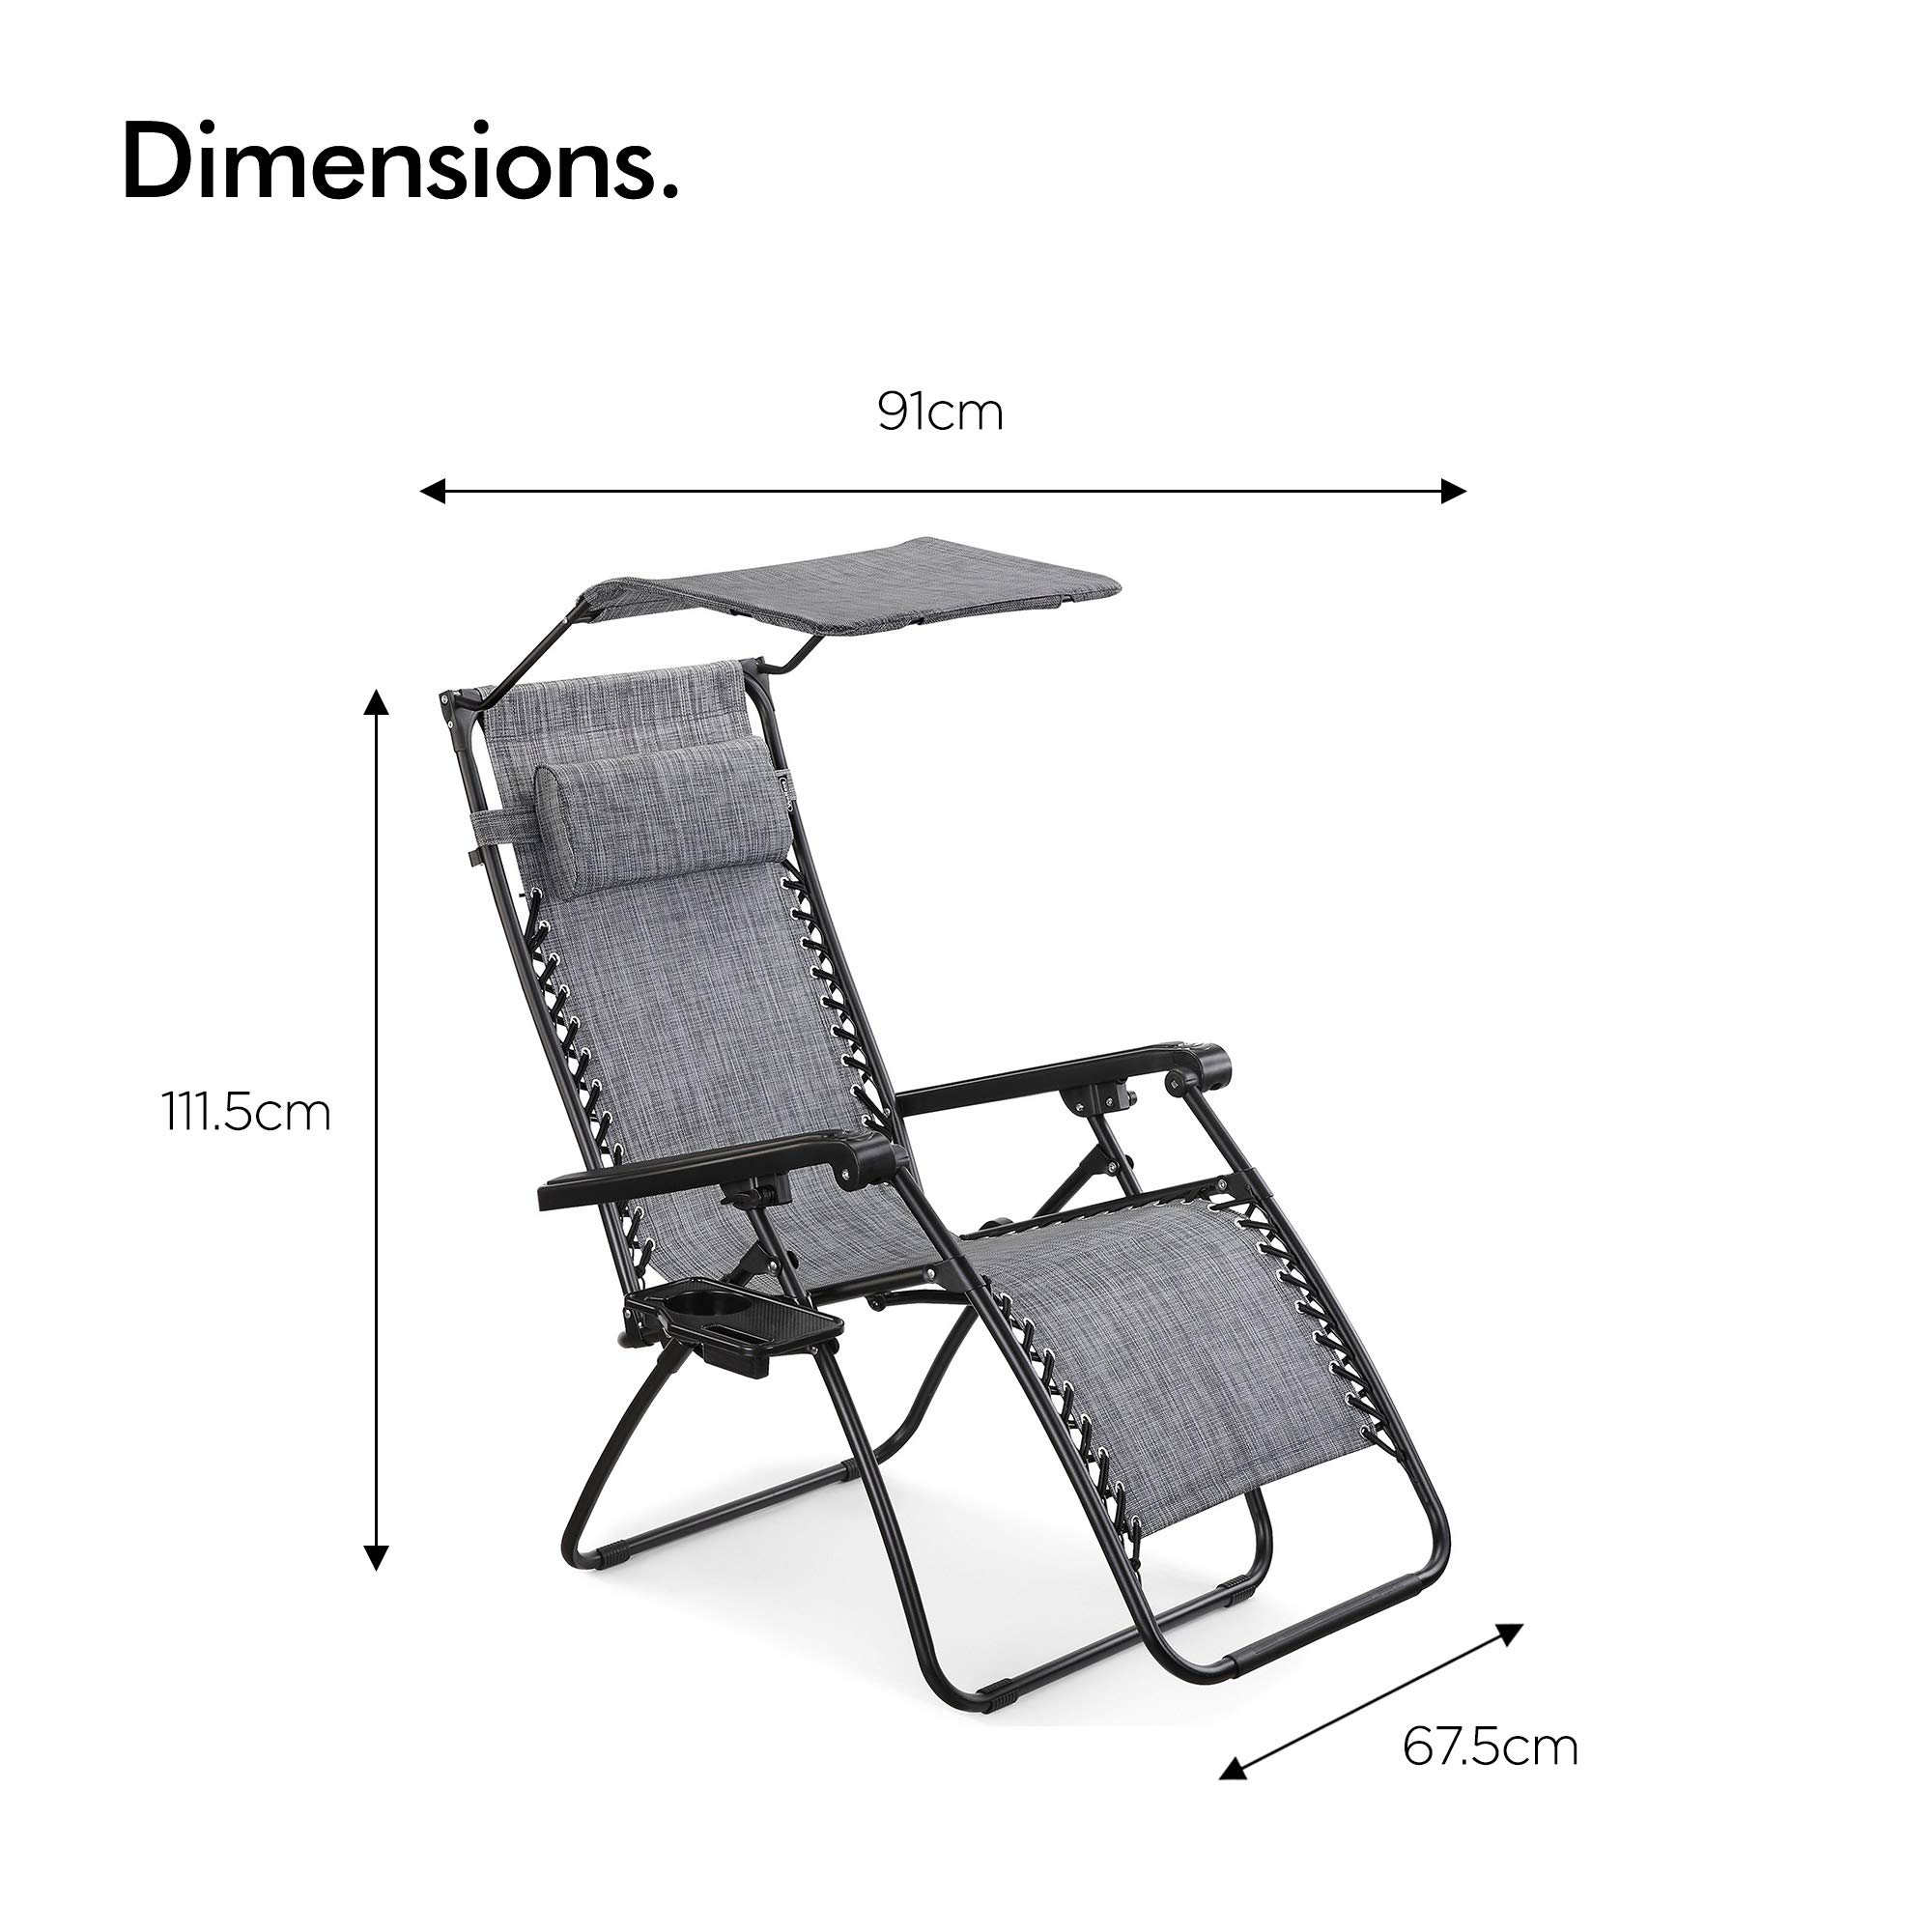 VonHaus Set of 2 Zero Gravity Chairs with Sun Canopy